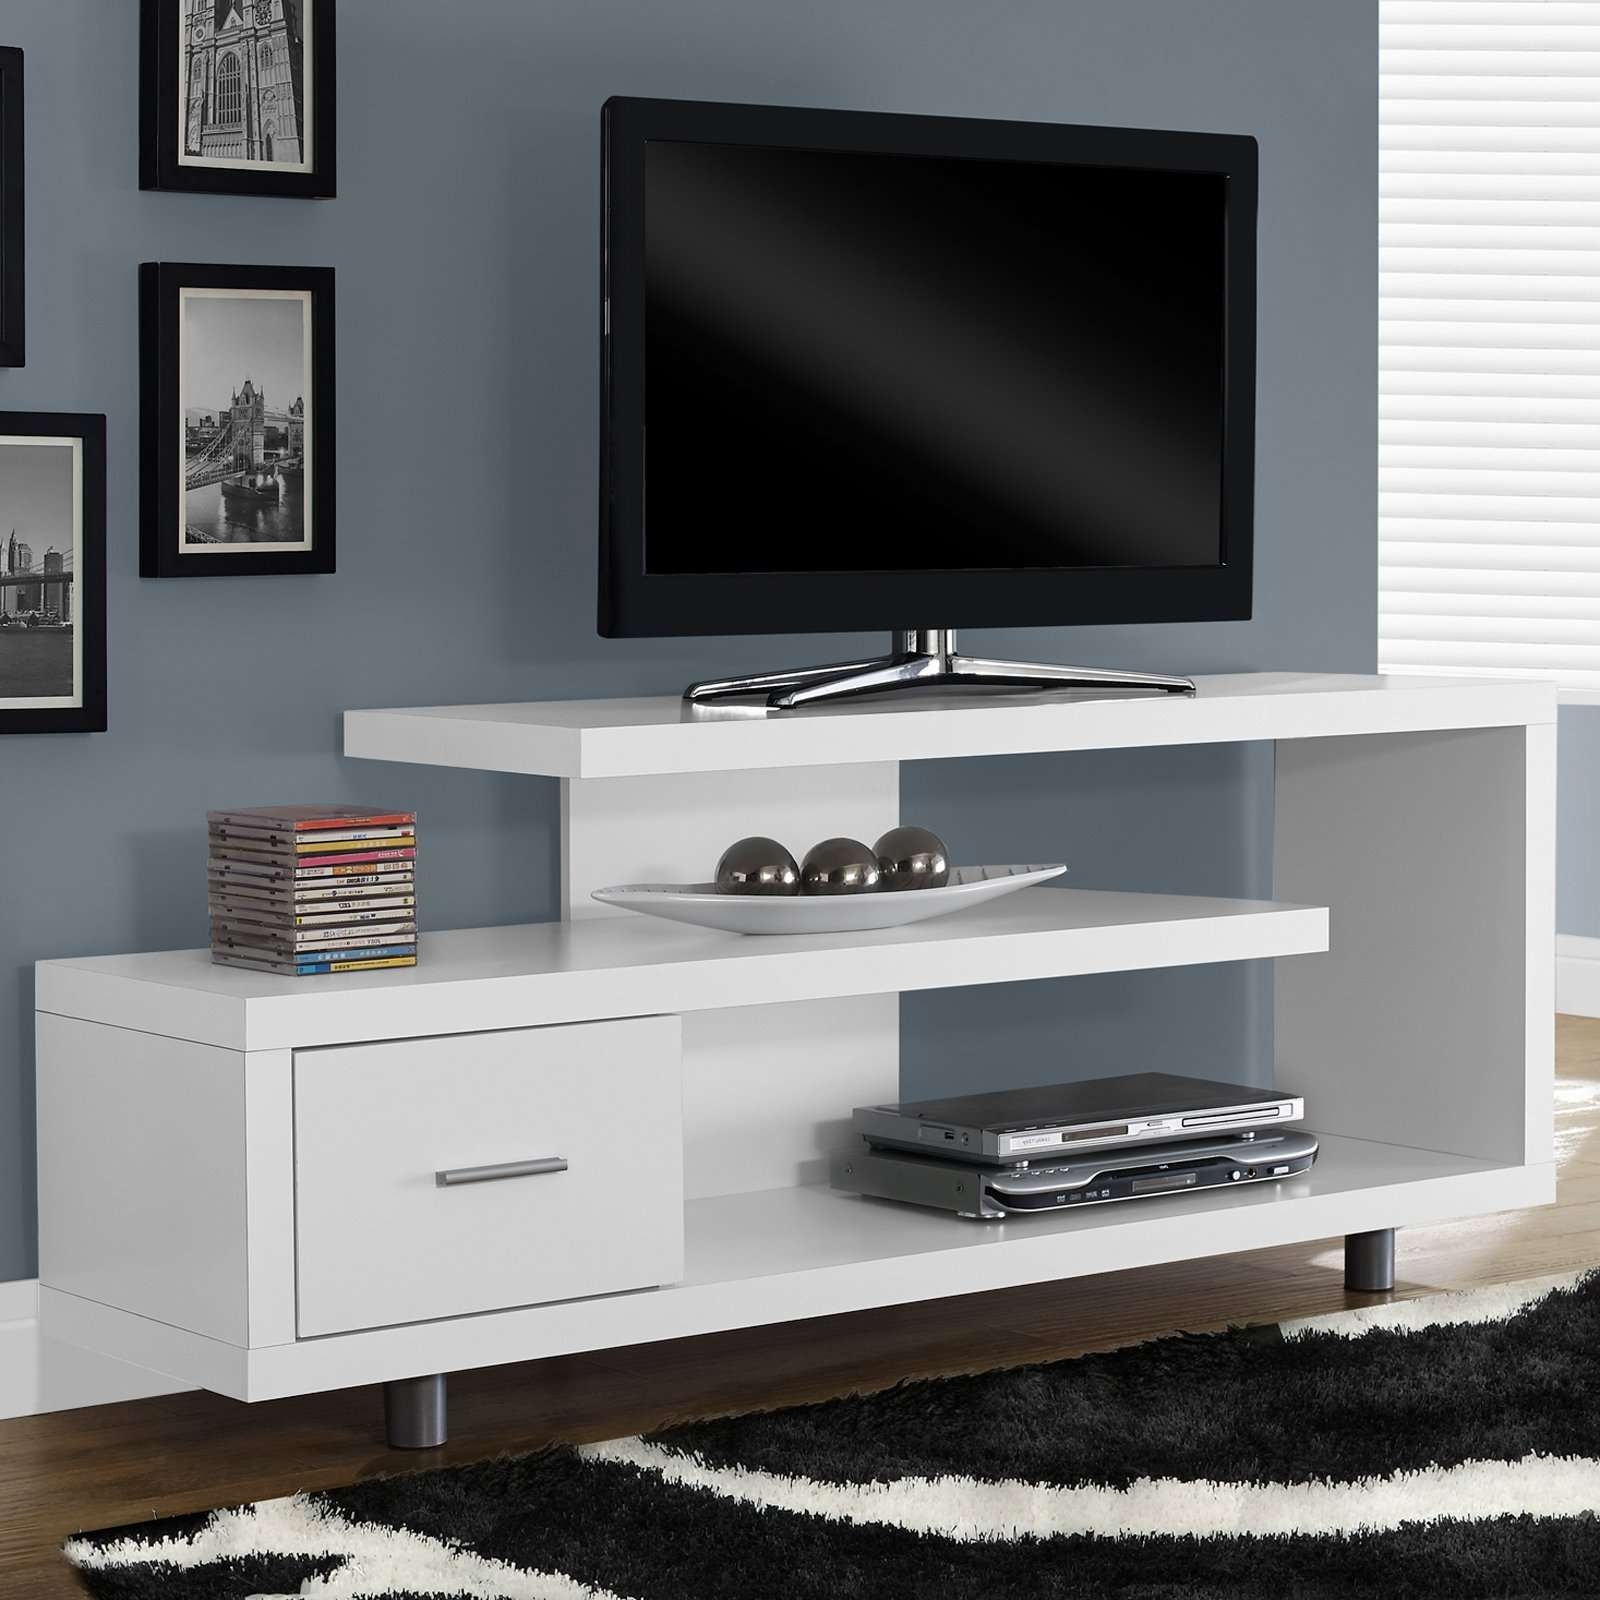 Tvilum Match Tv Stand With Adjustable Shelves – White | Hayneedle For Fancy Tv Cabinets (View 20 of 20)